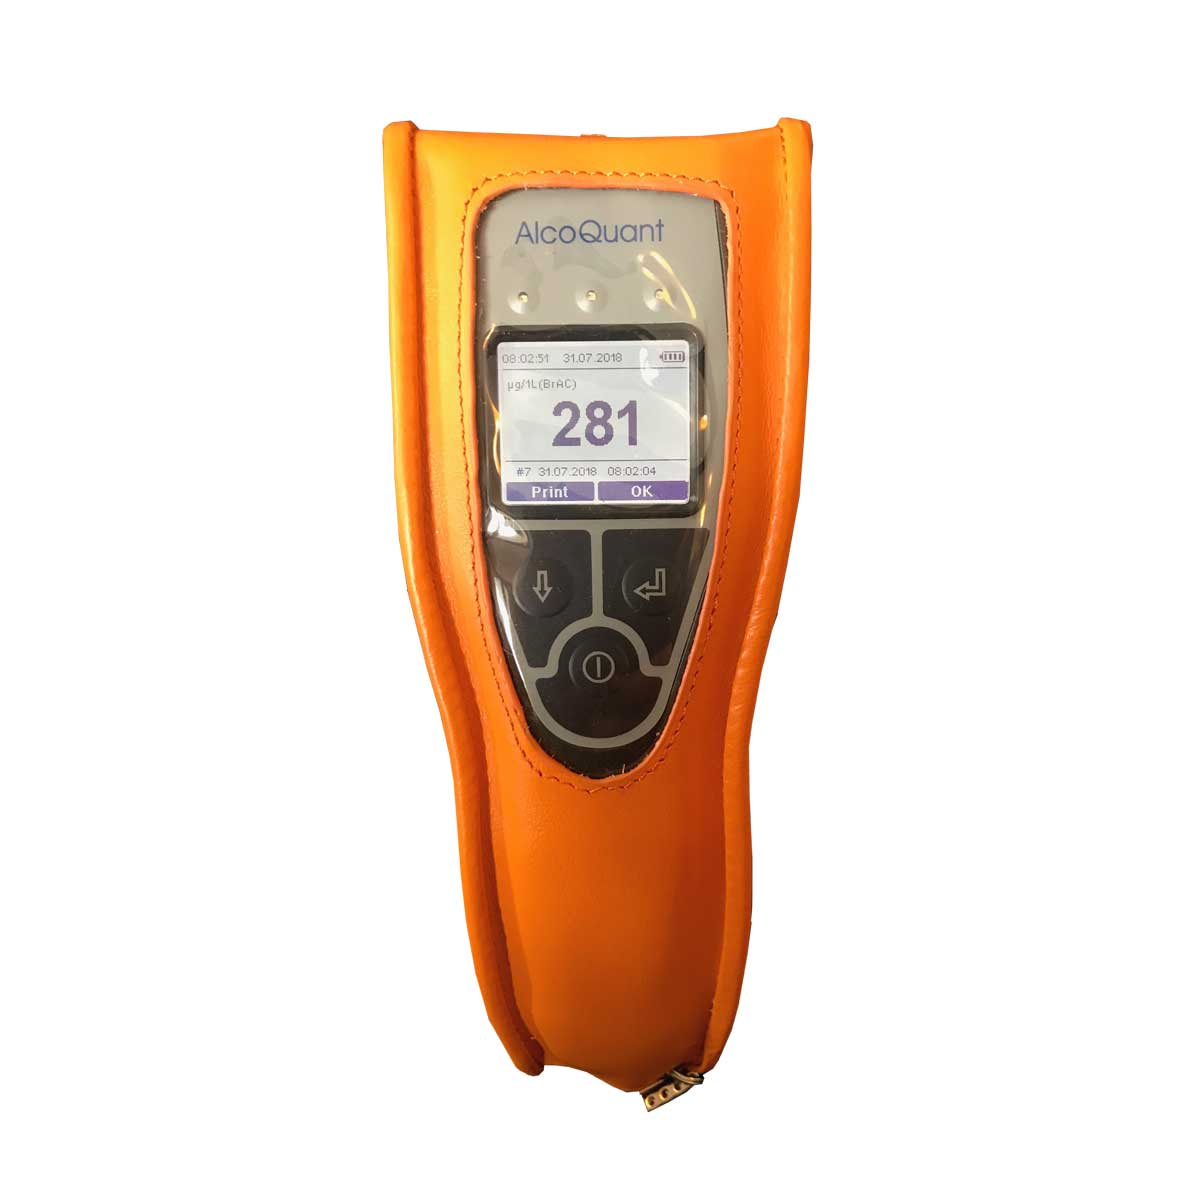 Diagnostic Bioserve - AlcoQuant ® 6020 plus breathalyser